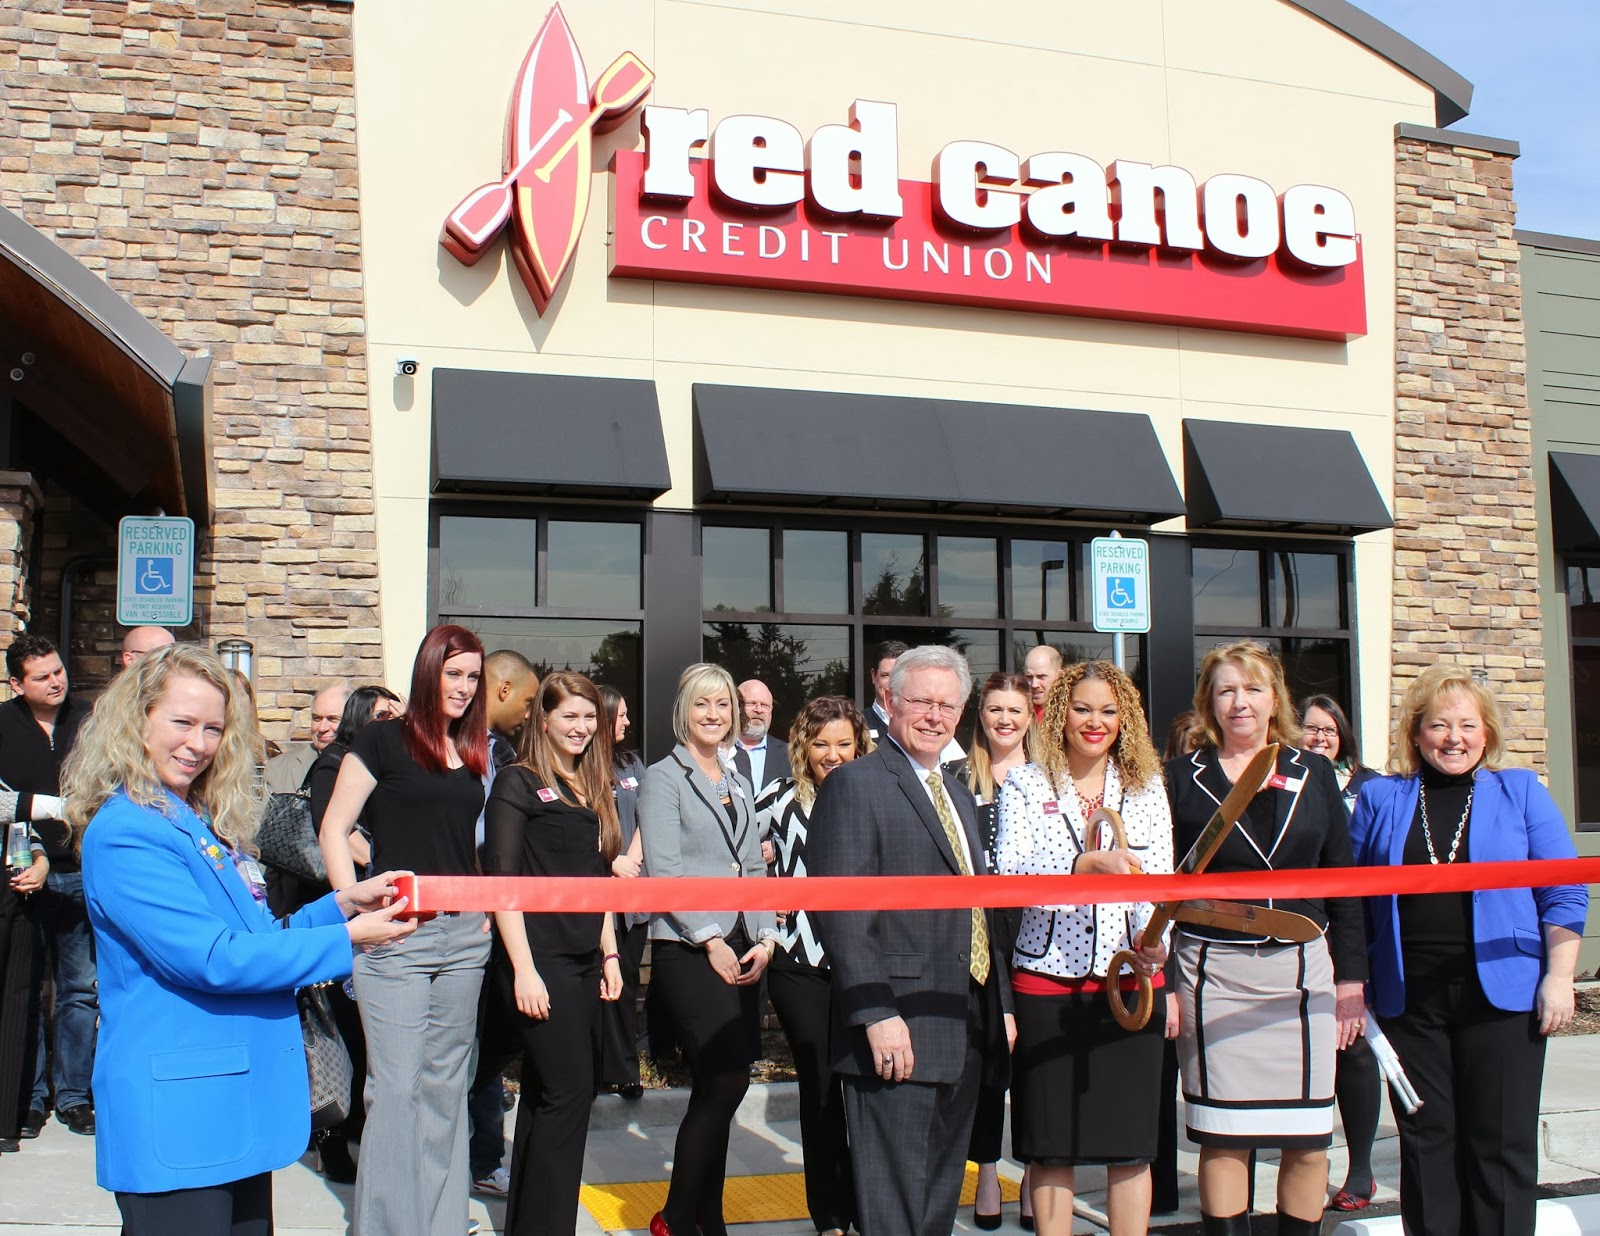 Puyallup Sumner Chamber of Commerce: Red Canoe Credit Union Opens New Branch Near So. Hill Mall